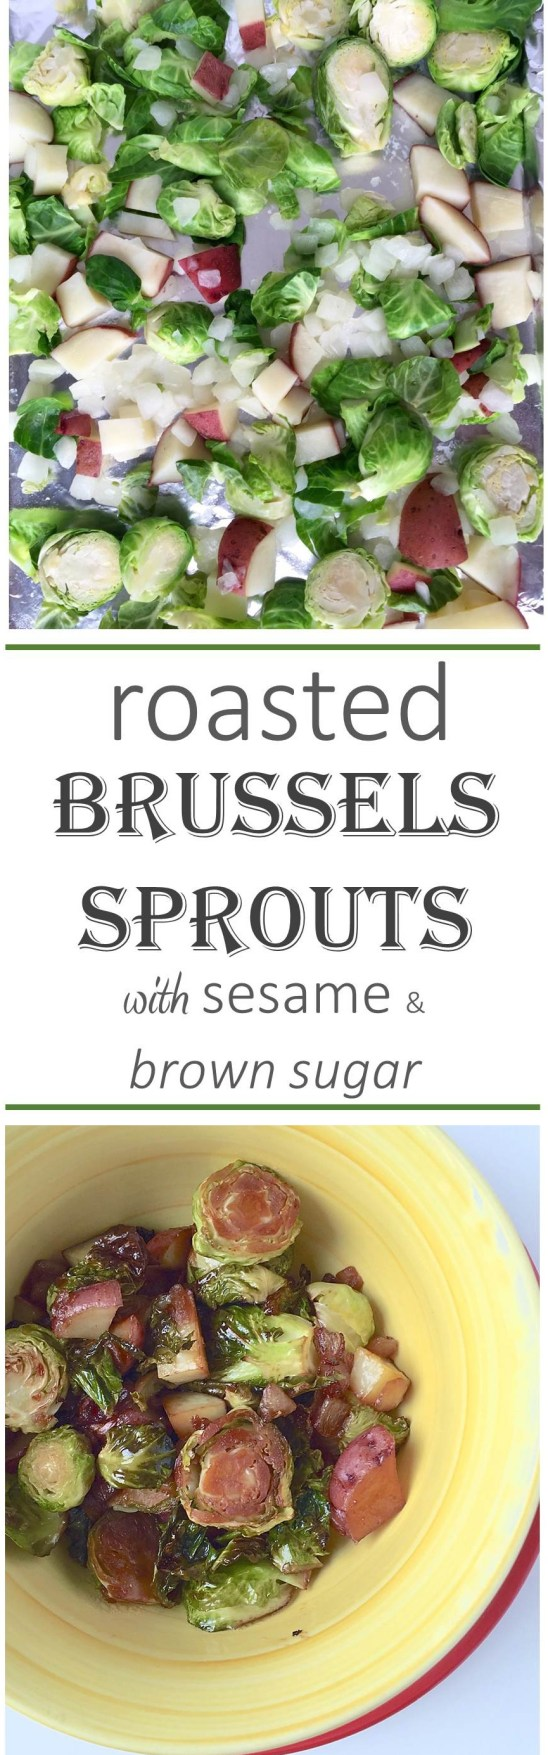 Roasted Brussels Sprouts w Sesame Brown Sugar